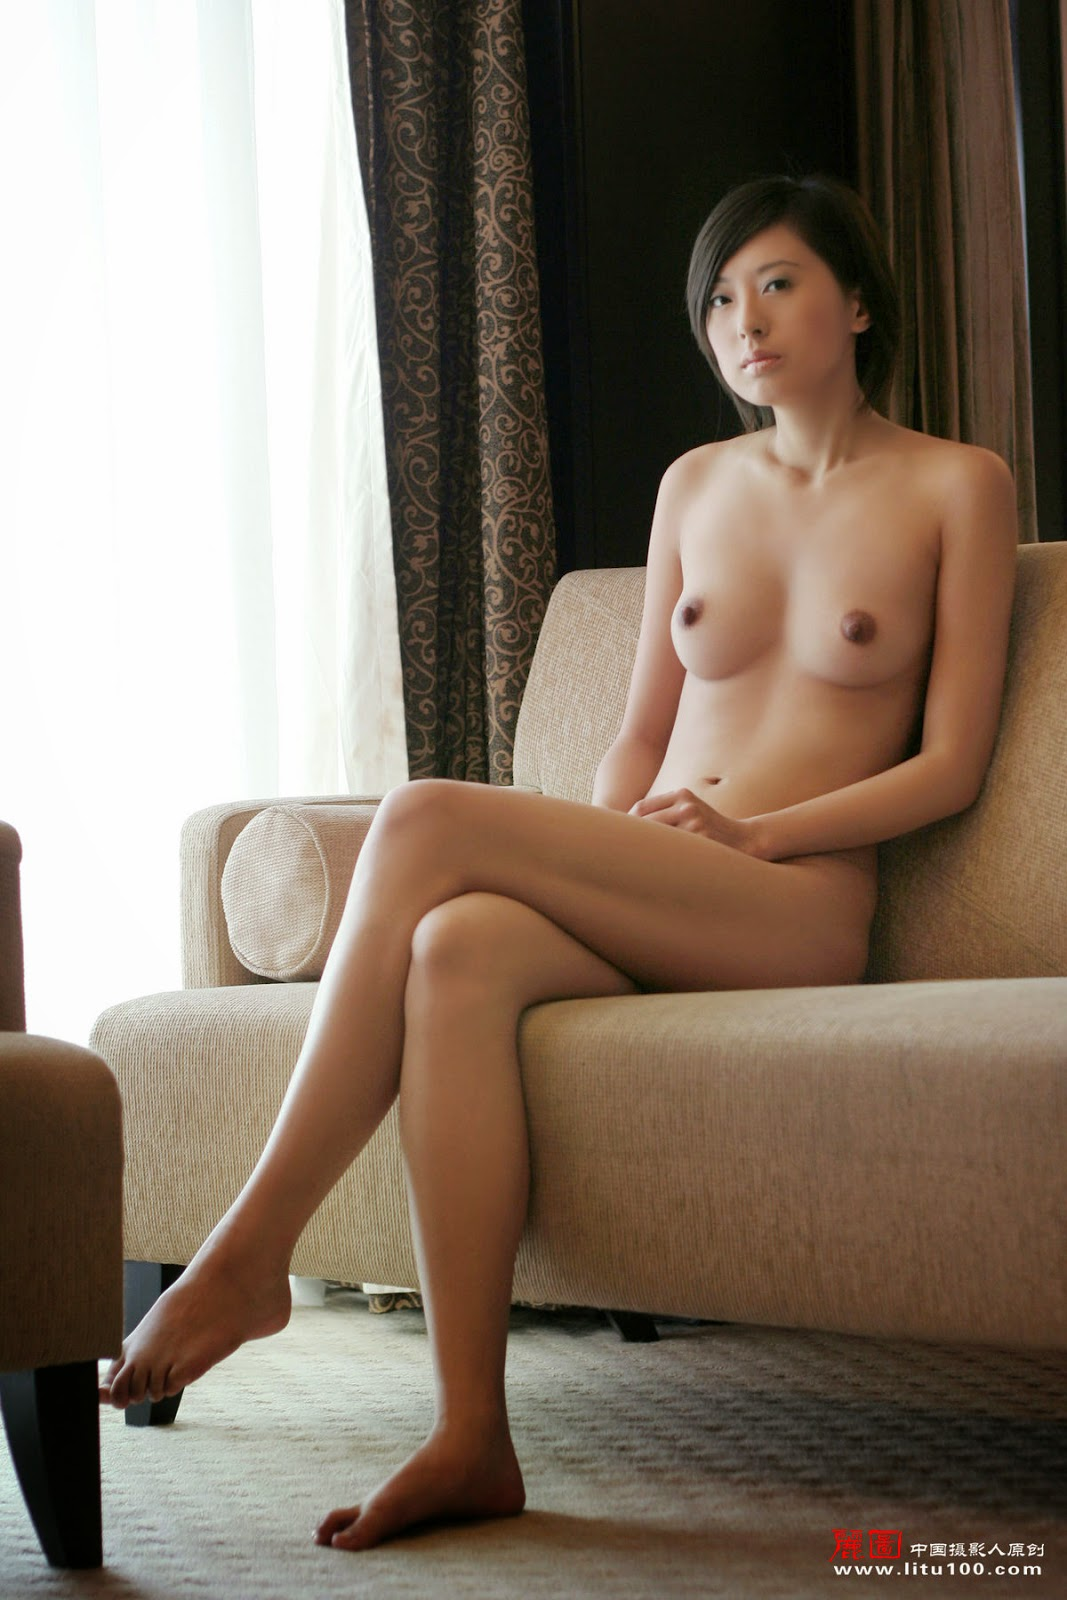 Recollect more Taiwanese artist naked photo opinion